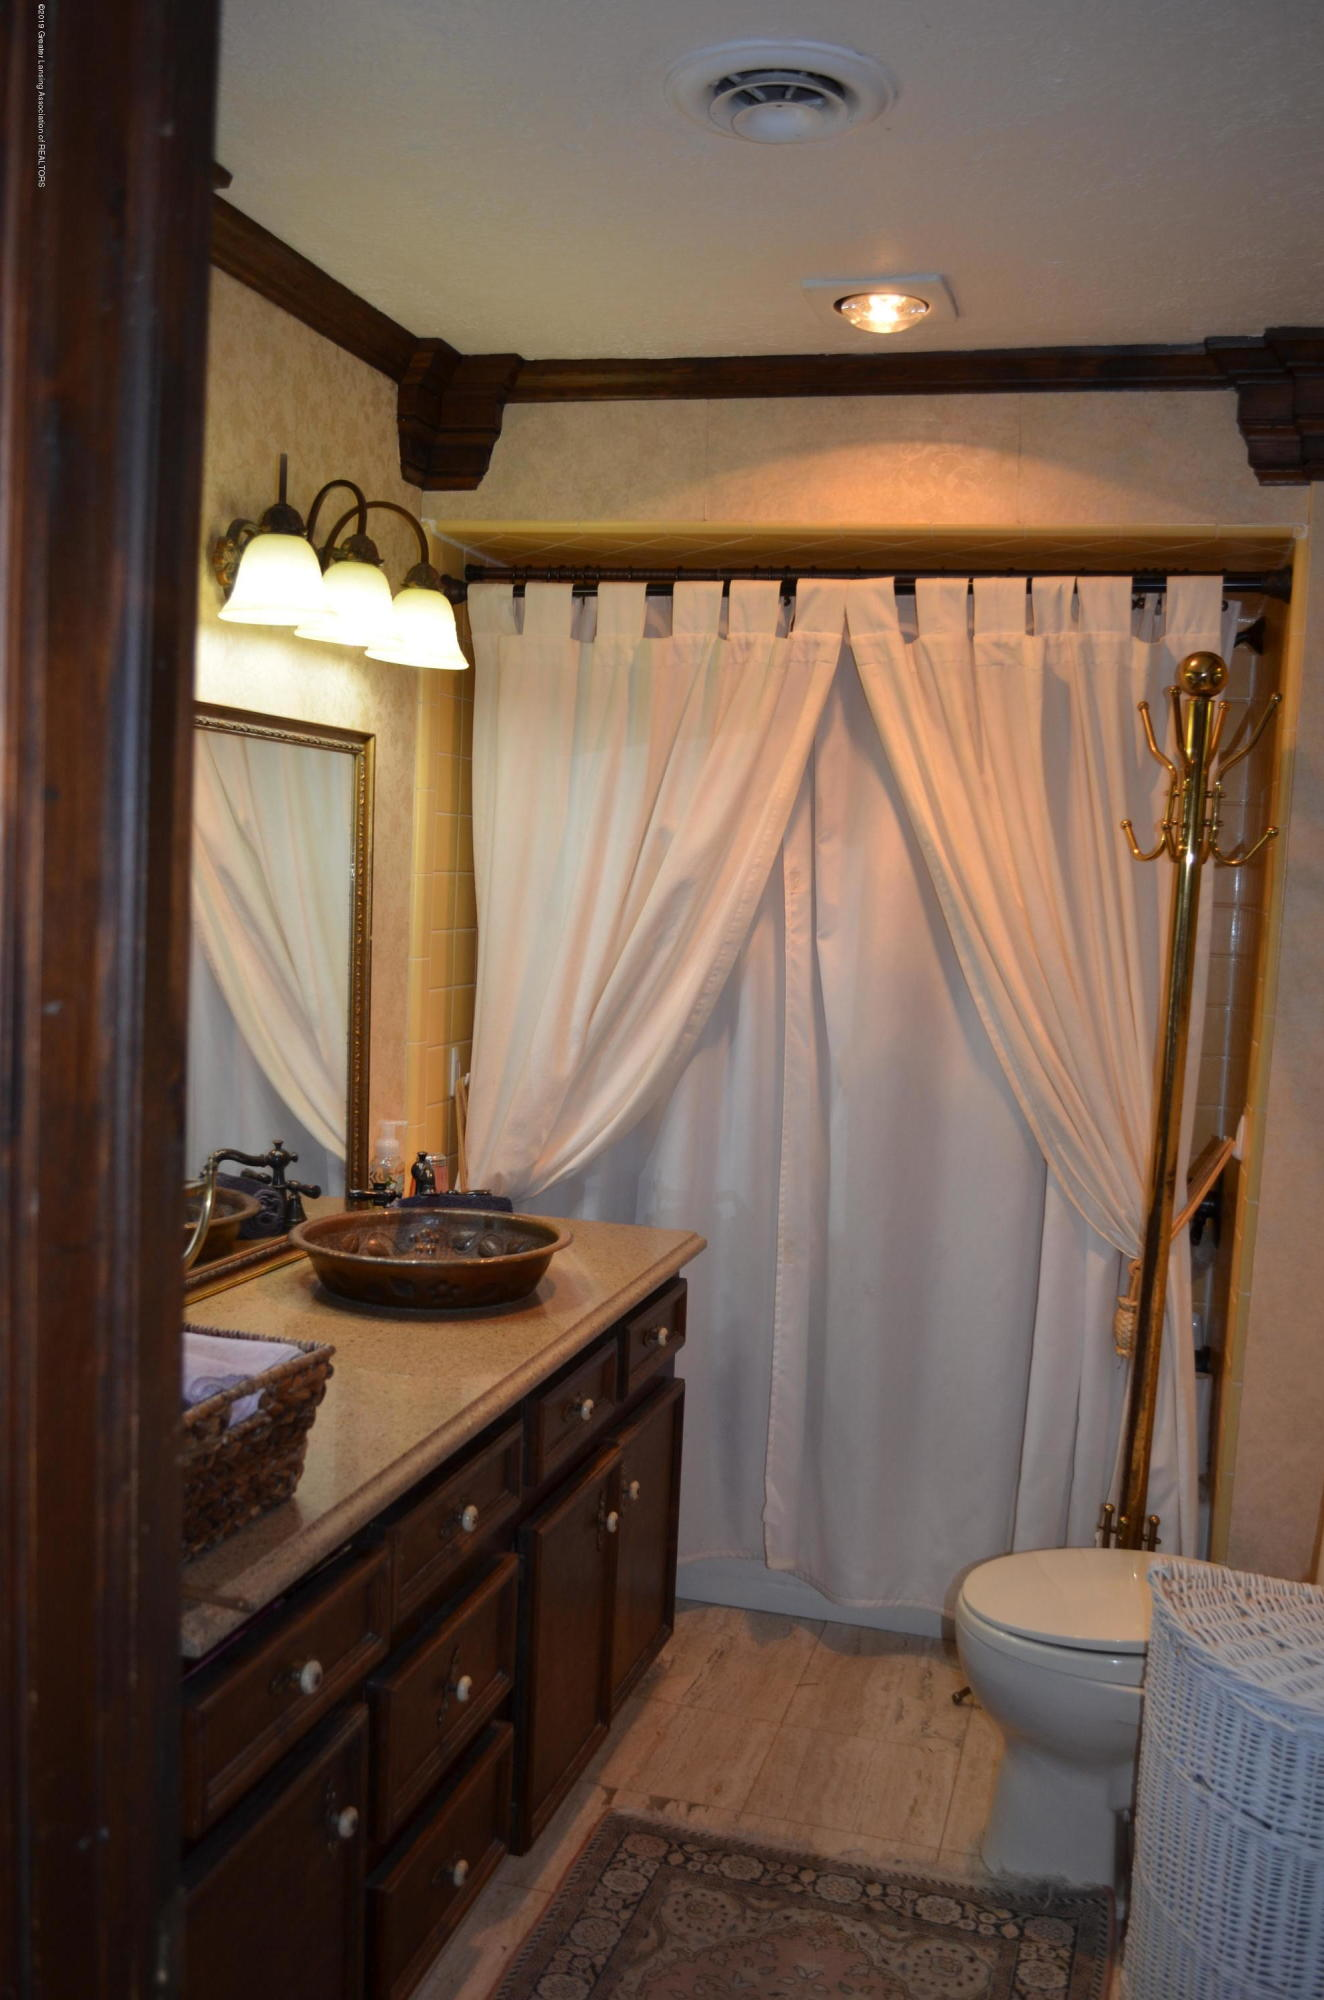 693 Grovenburg Rd - Master Bath - 29